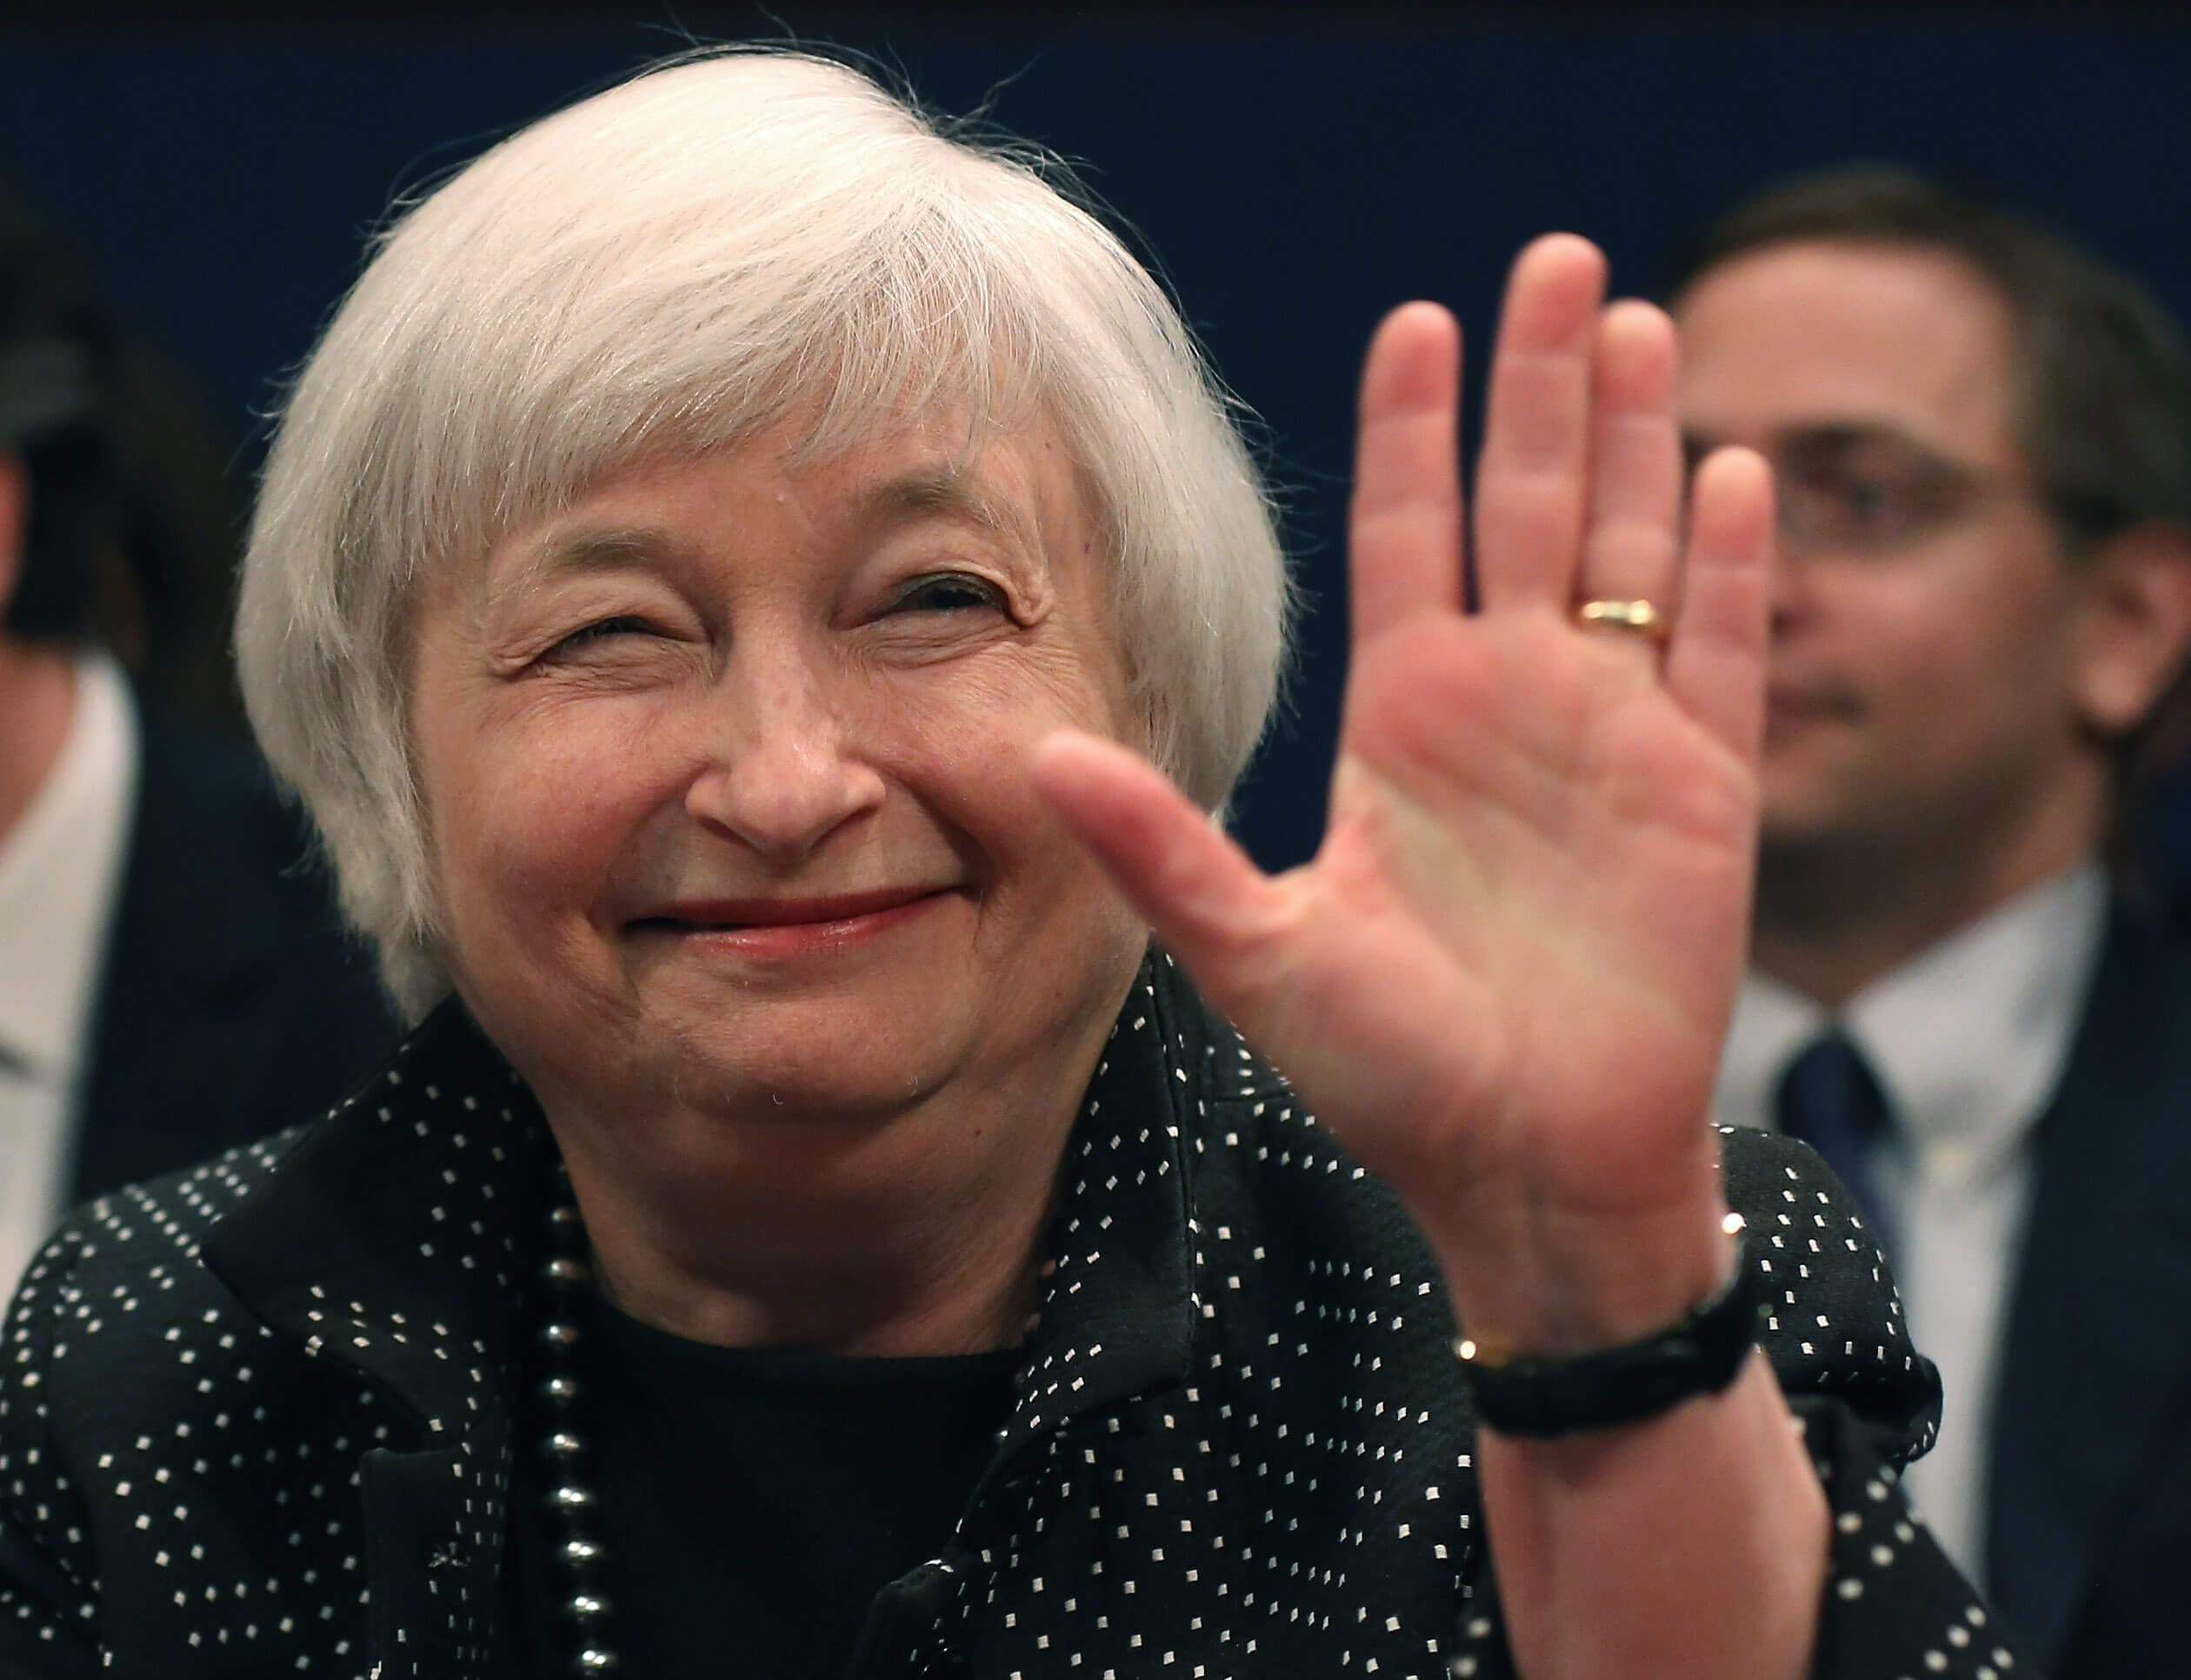 yellen says prices high for stocks commercial real estate business janet yellen janet yellen biography janet y janet yellen real estate trends interest rates yellen says prices high for stocks